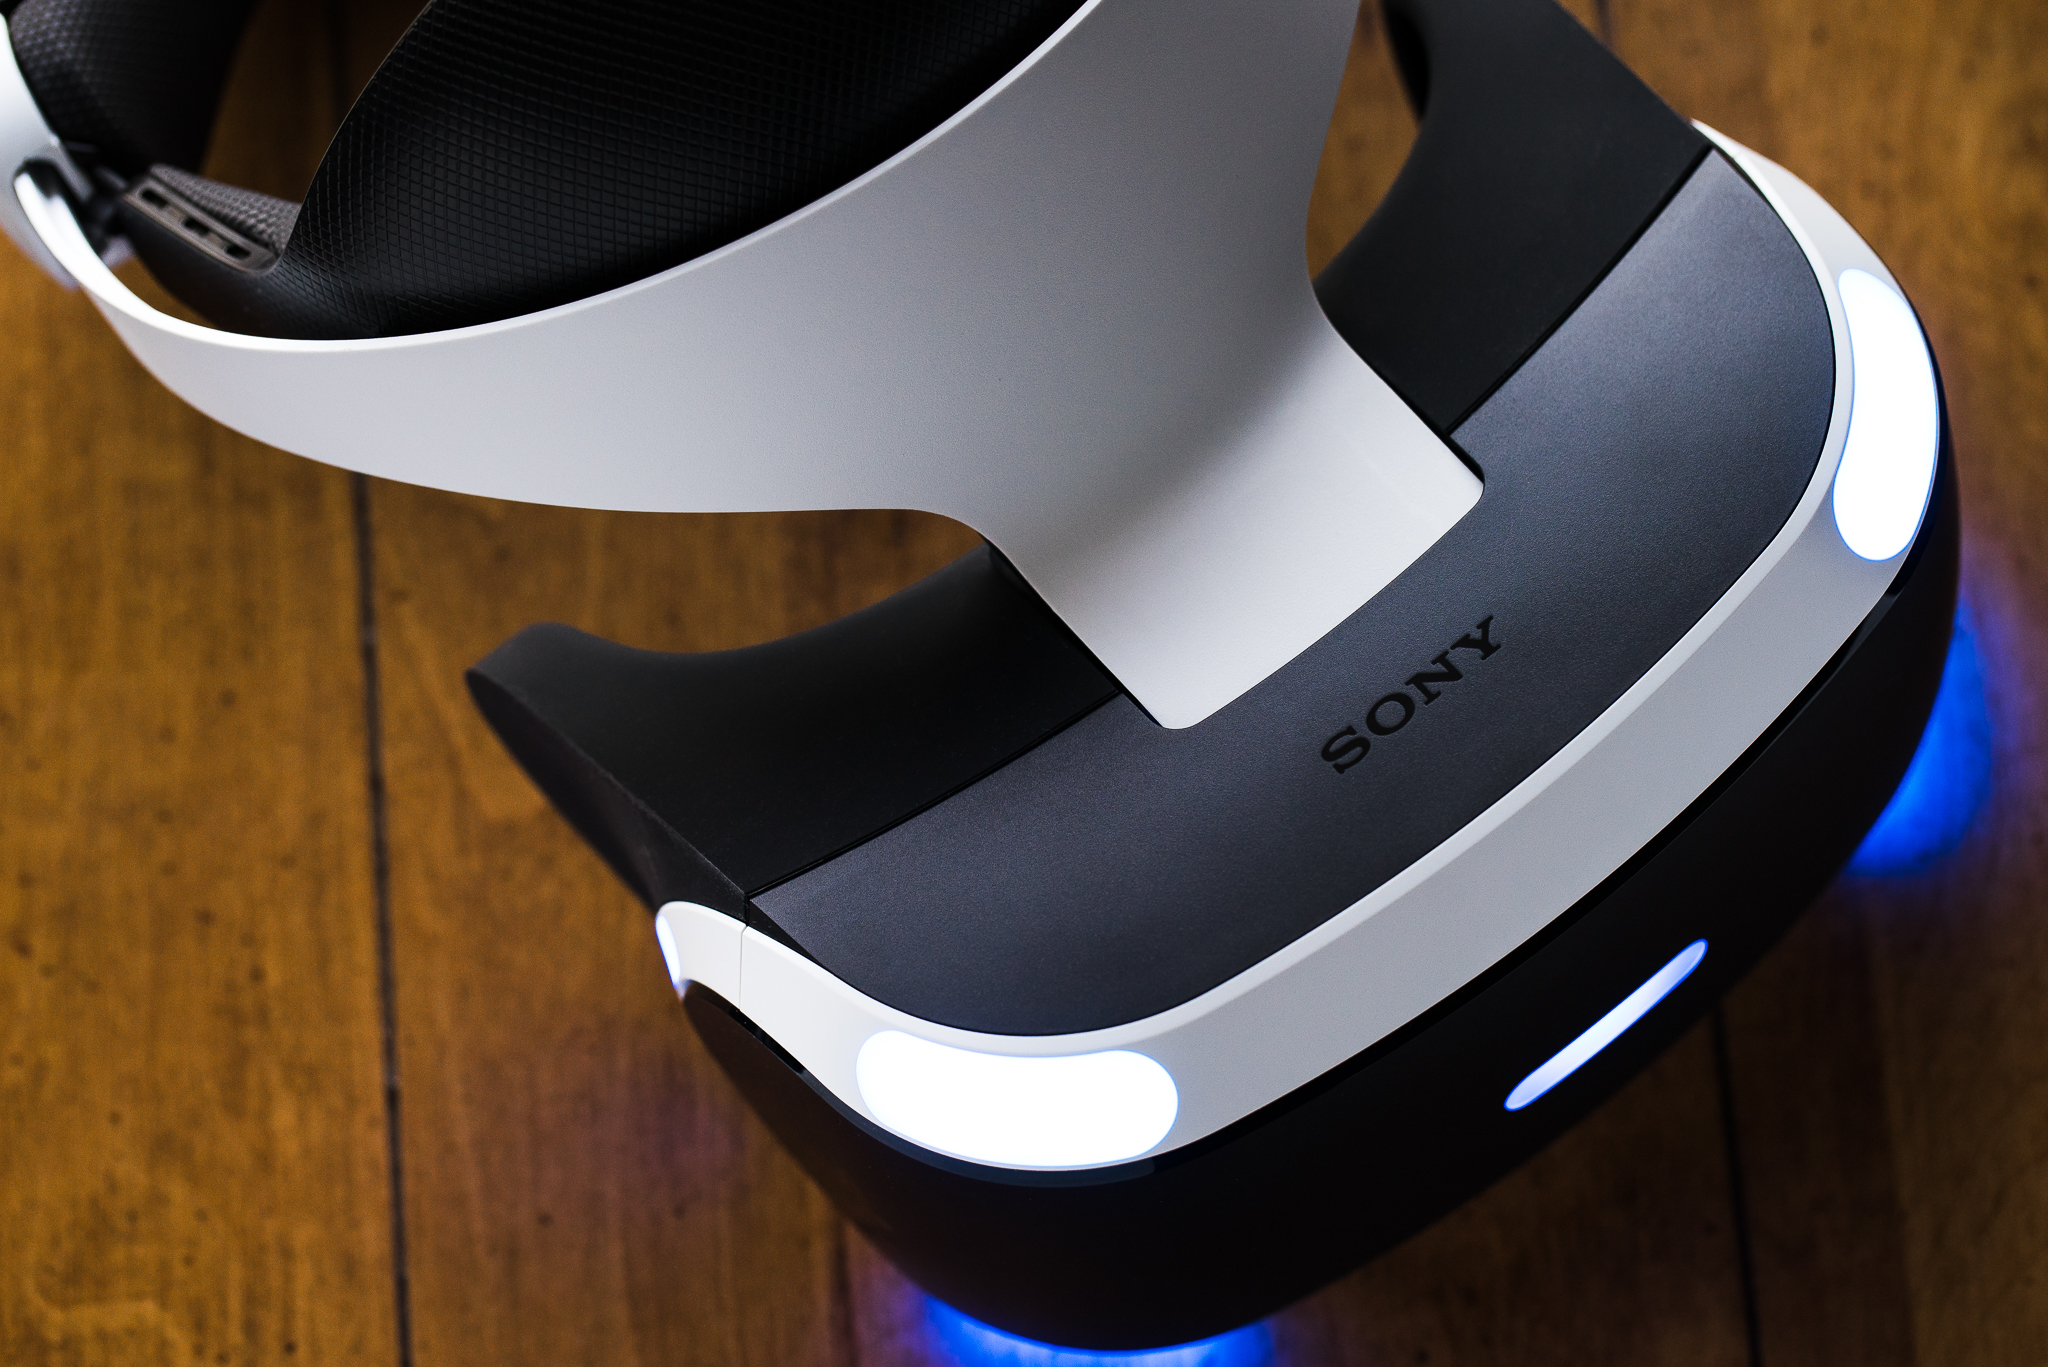 PlayStation continues its VR dominance with bonkers PSVR deal